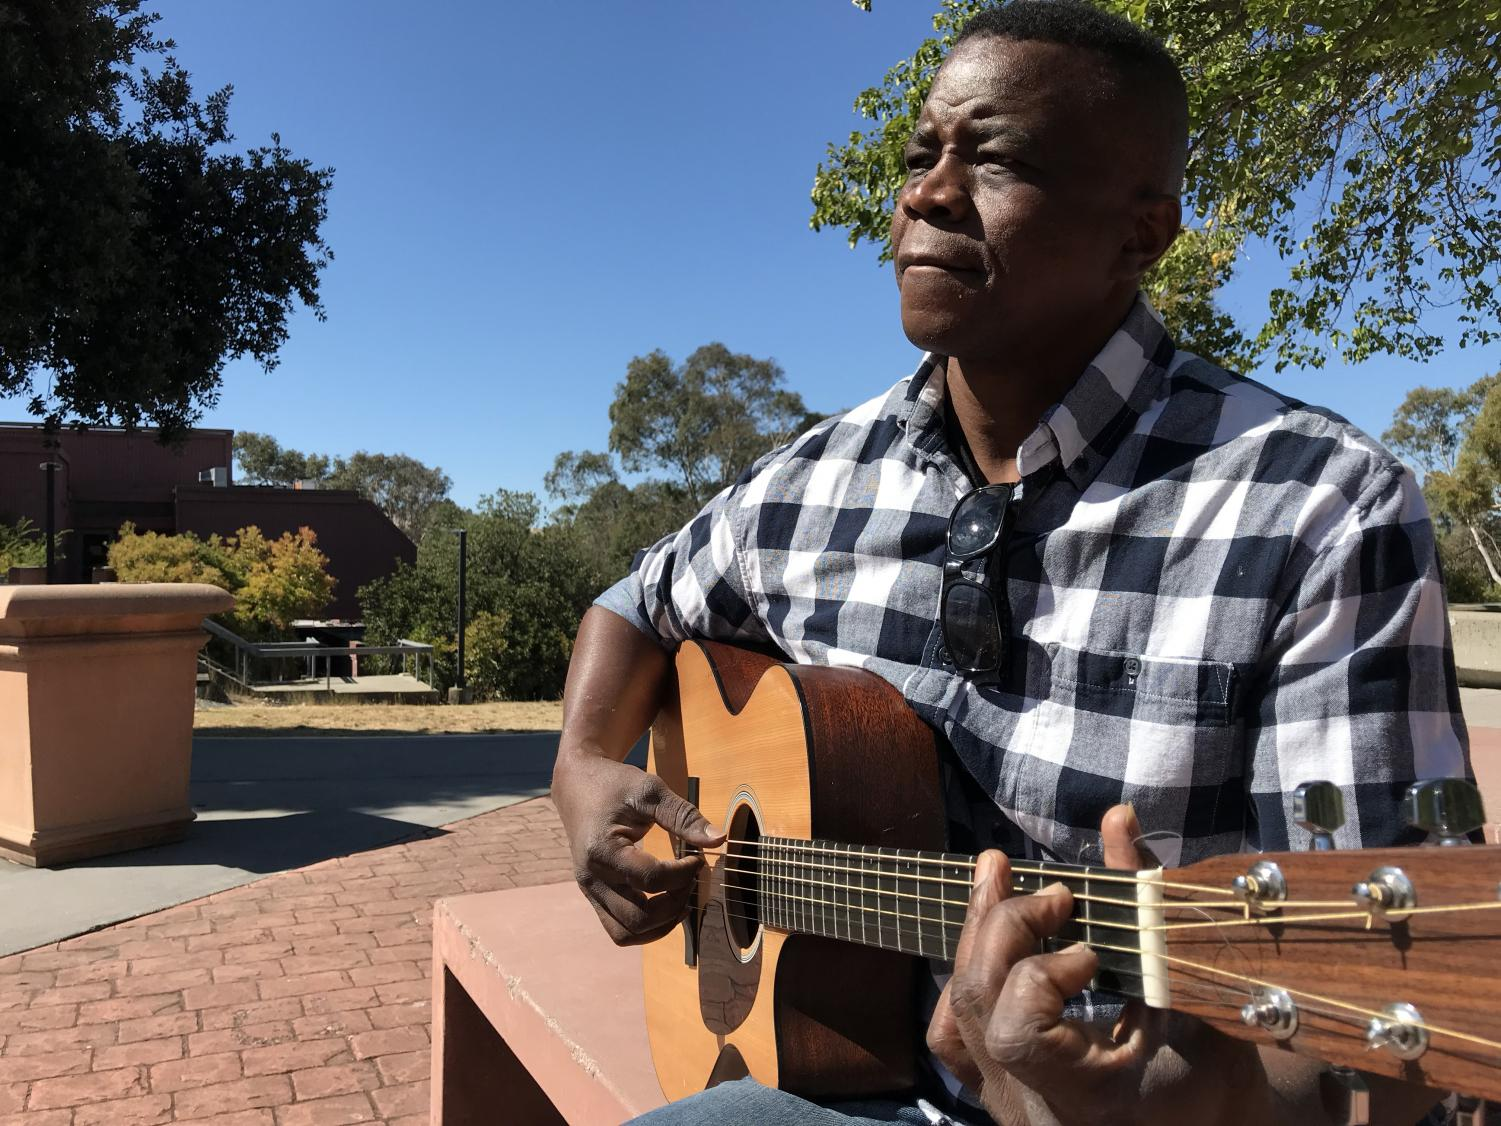 LMC student and musician Bona Nsiala plays guitar on campus for passersby to listen to.